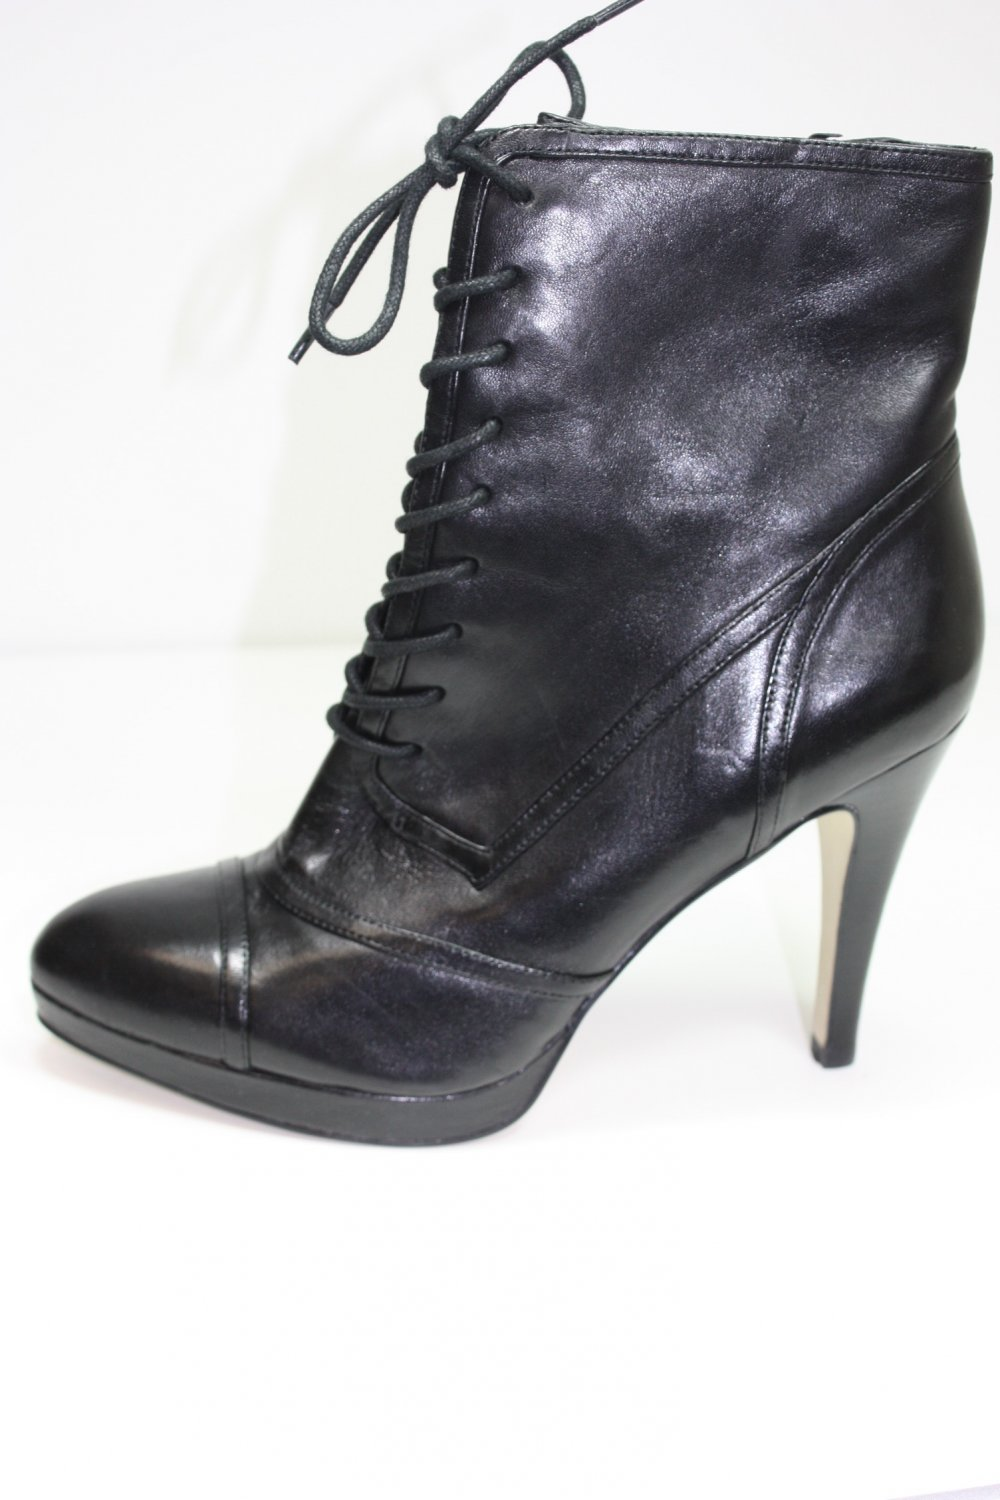 Marc Fisher MFFILIP Ankle Boots Black Shoes US 7.5 $139